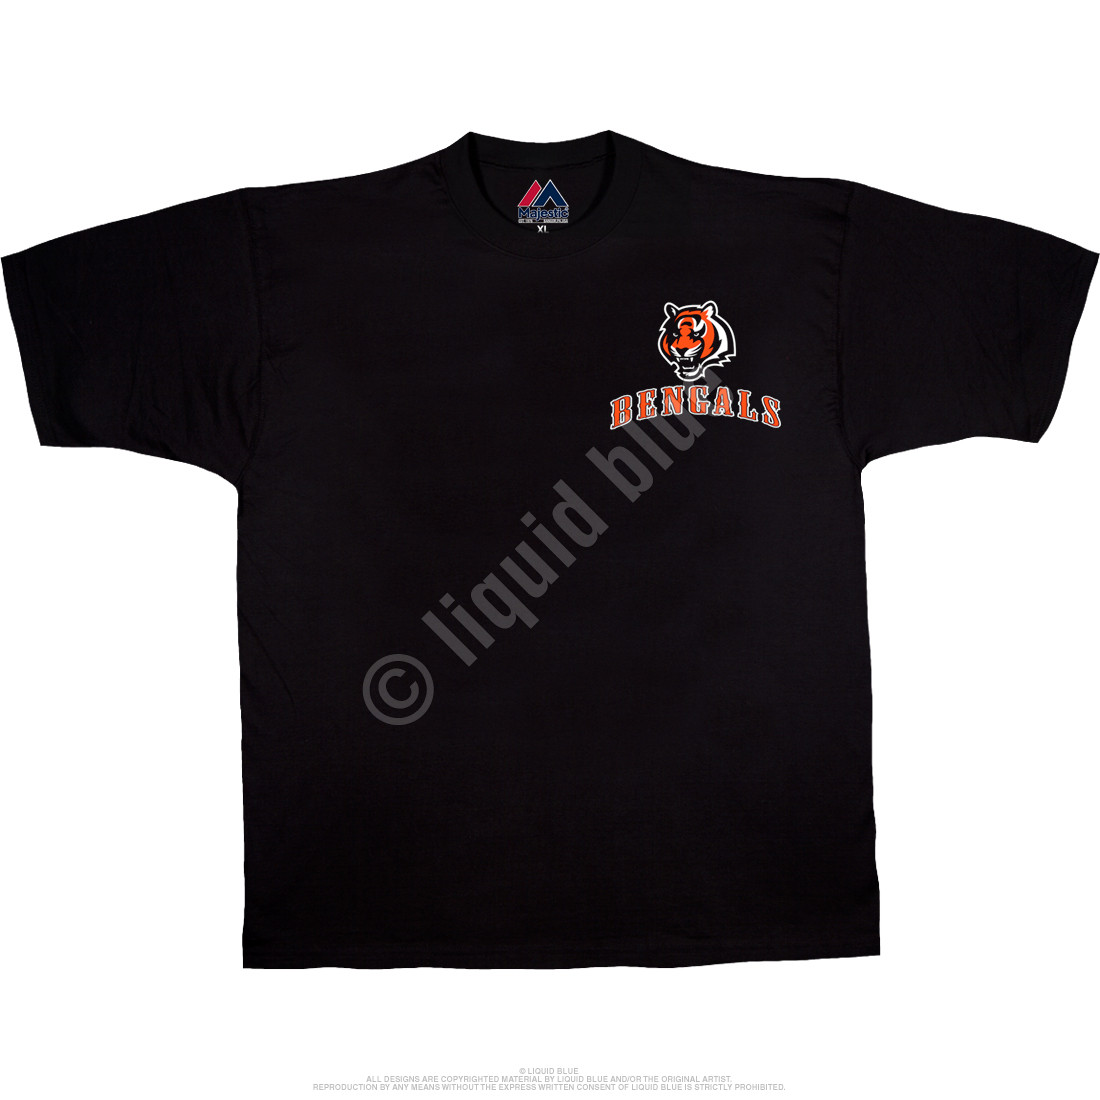 Cincinnati Bengals Running Back Black T-Shirt